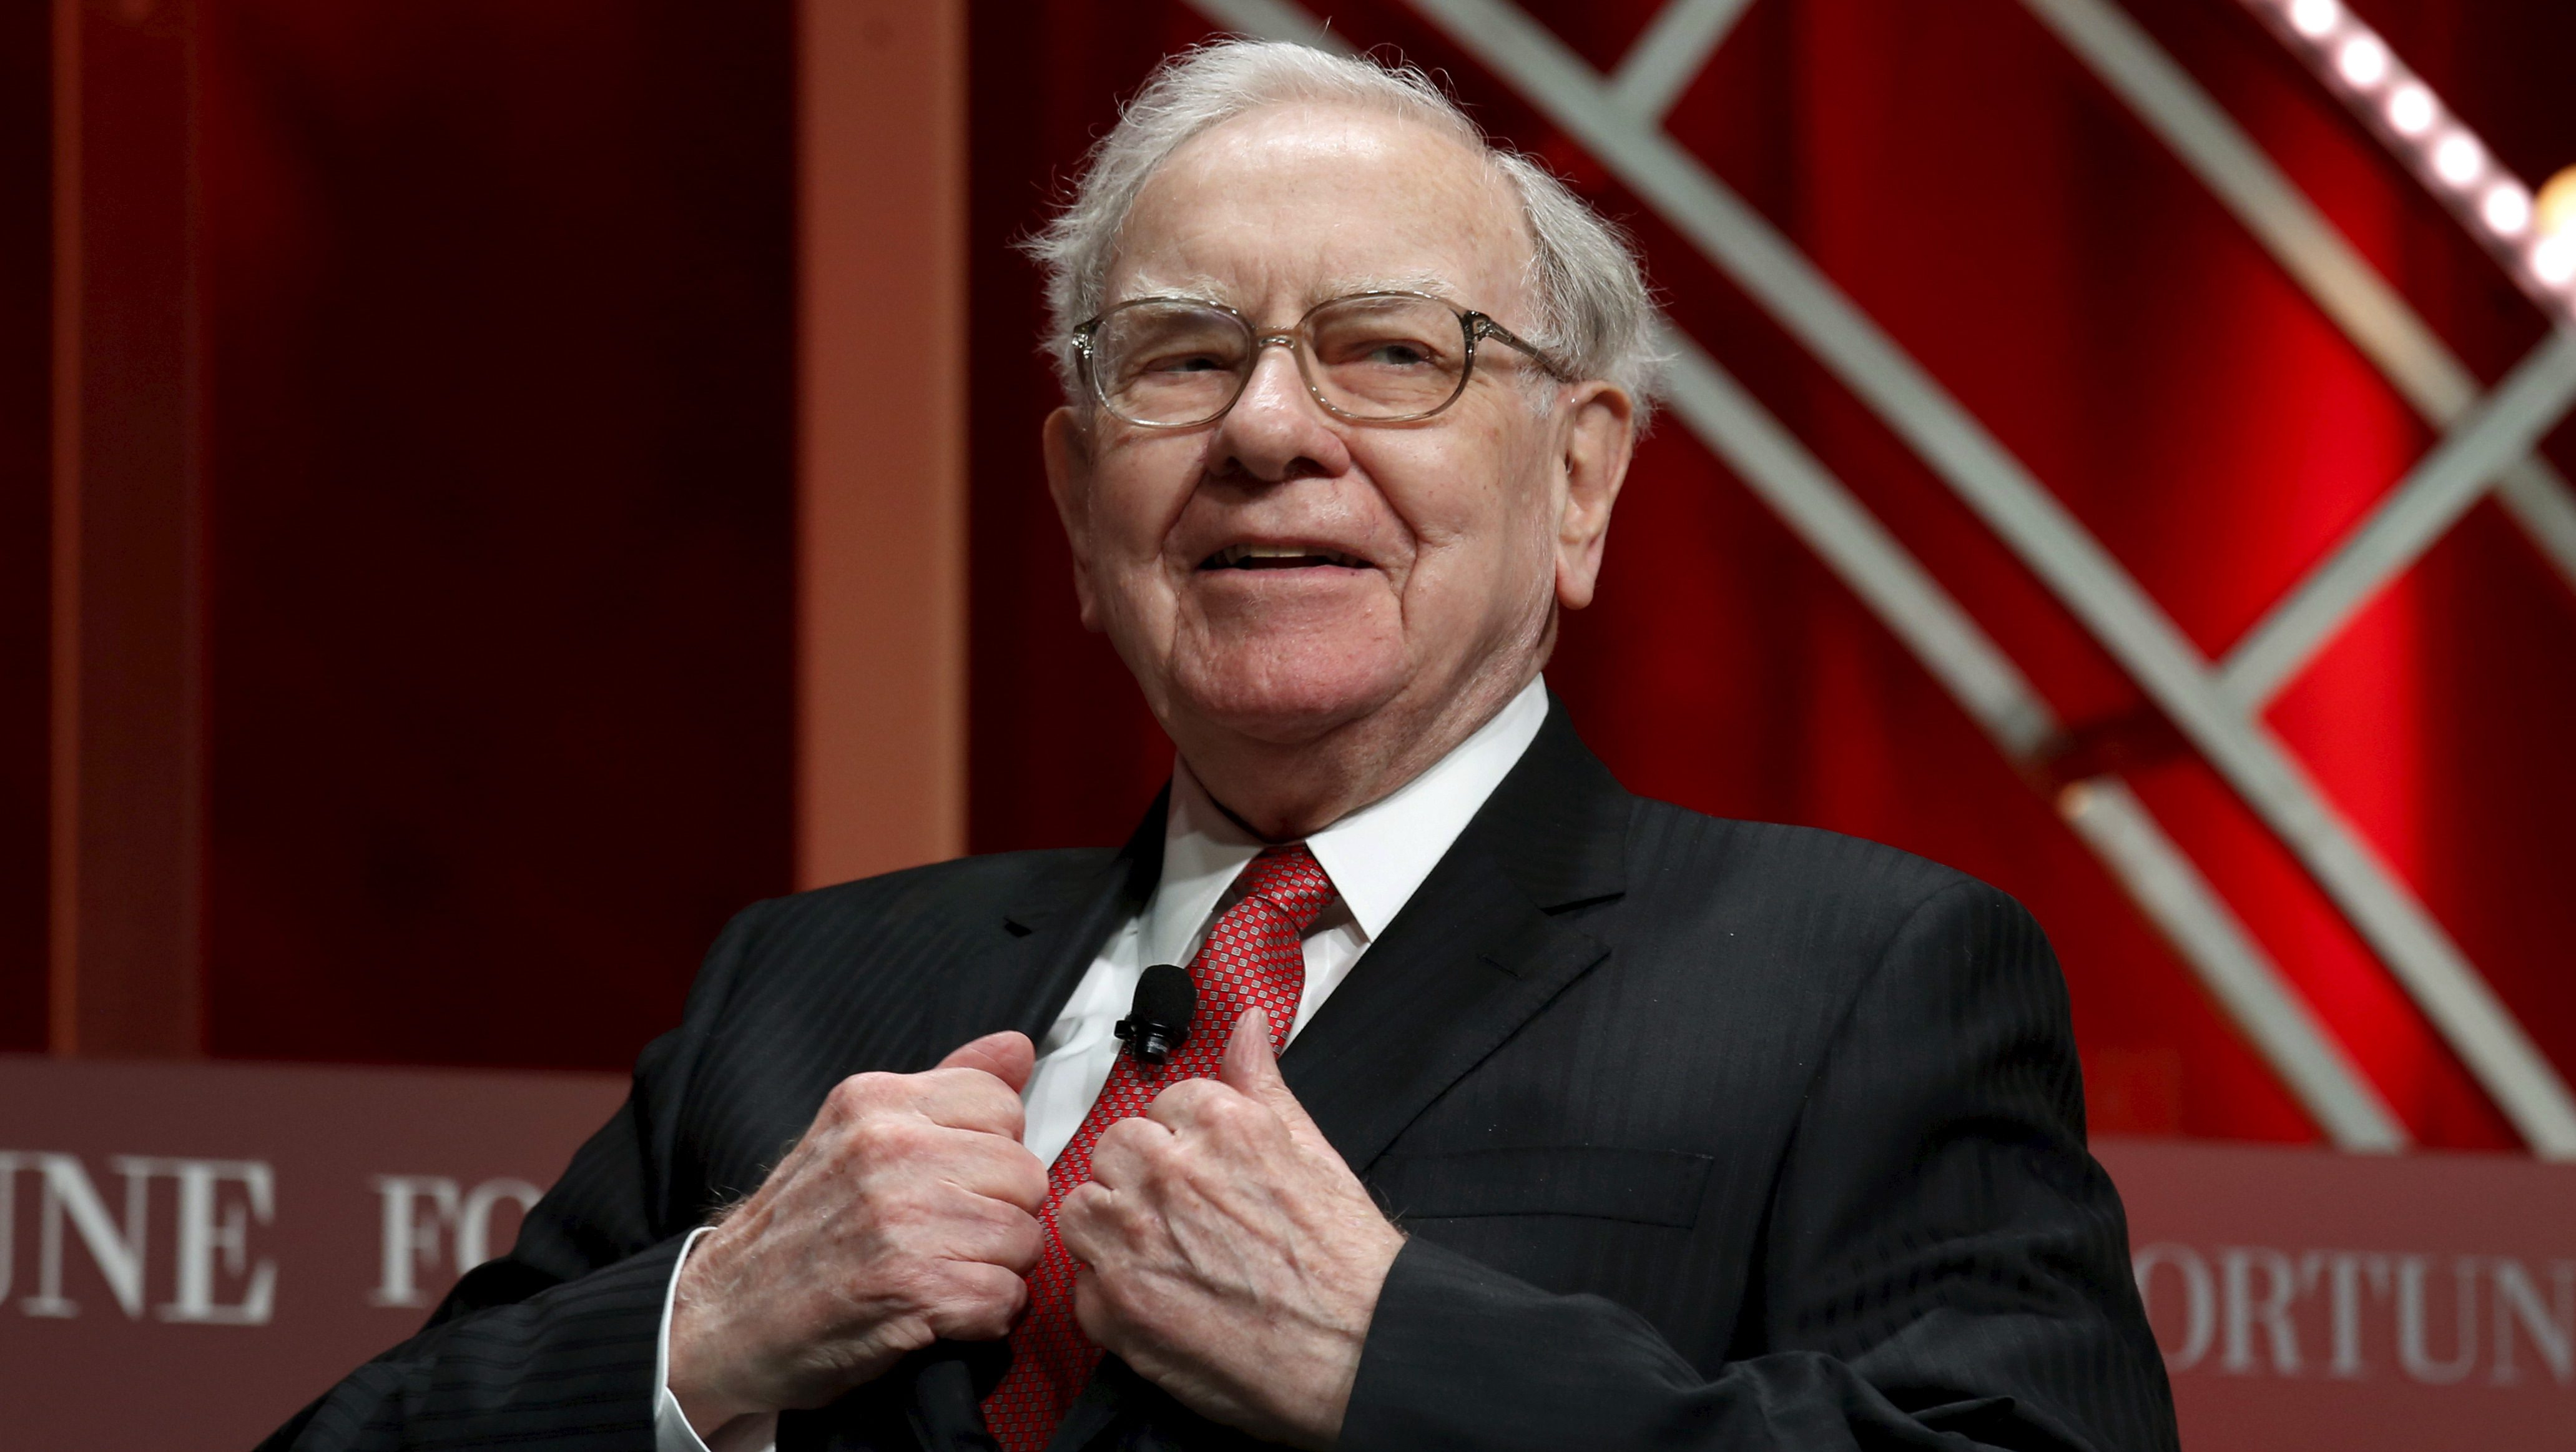 Warren Buffett, chairman and CEO of Berkshire Hathaway, takes his seat to speak at the Fortune's Most Powerful Women's Summit in Washington October 13, 2015.  REUTERS/Kevin Lamarque/File Photo - RTX2D4HL